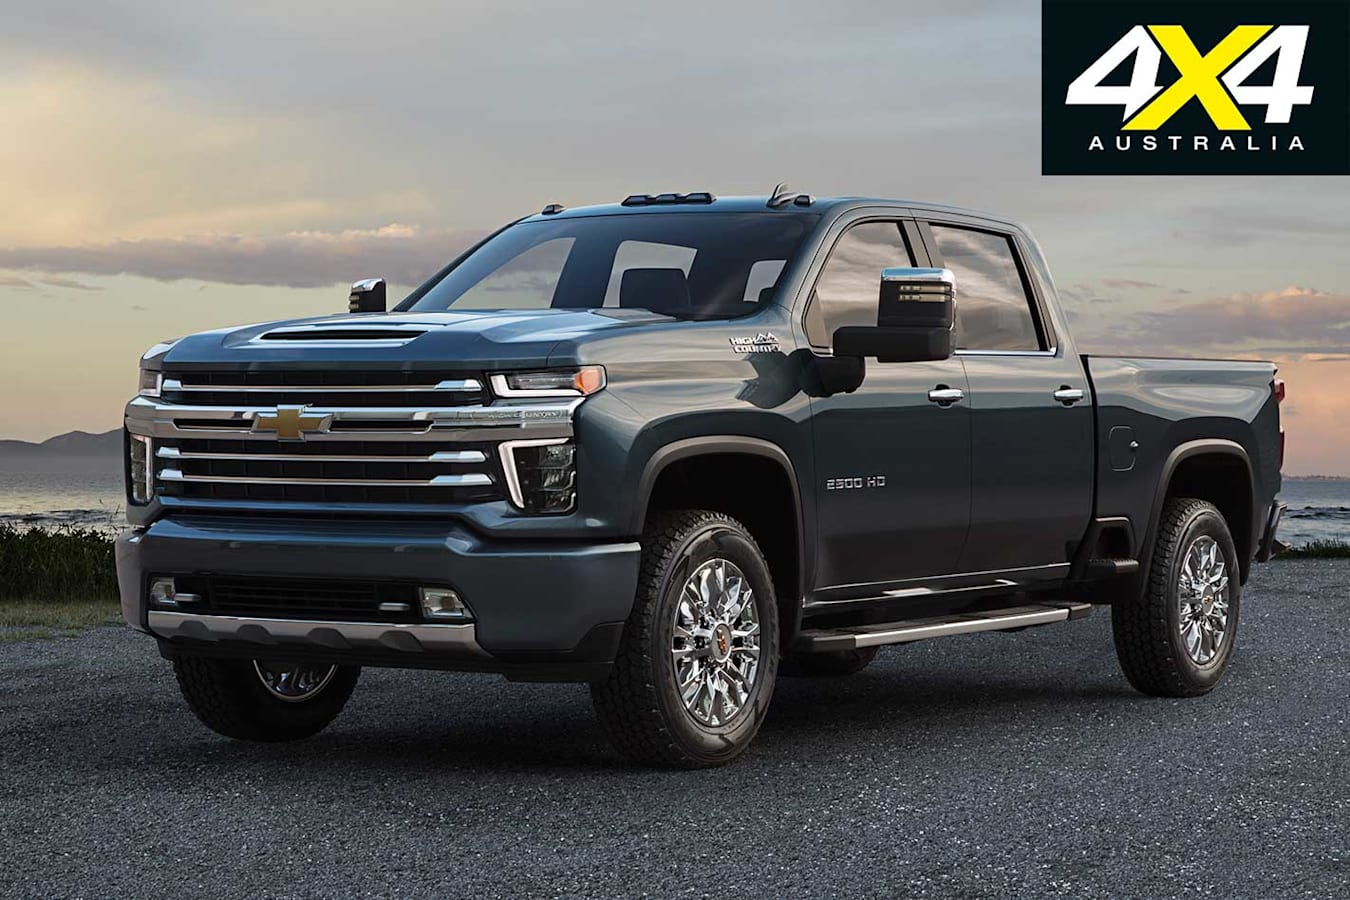 Full Size Pick Up Truck Opinion Jpg